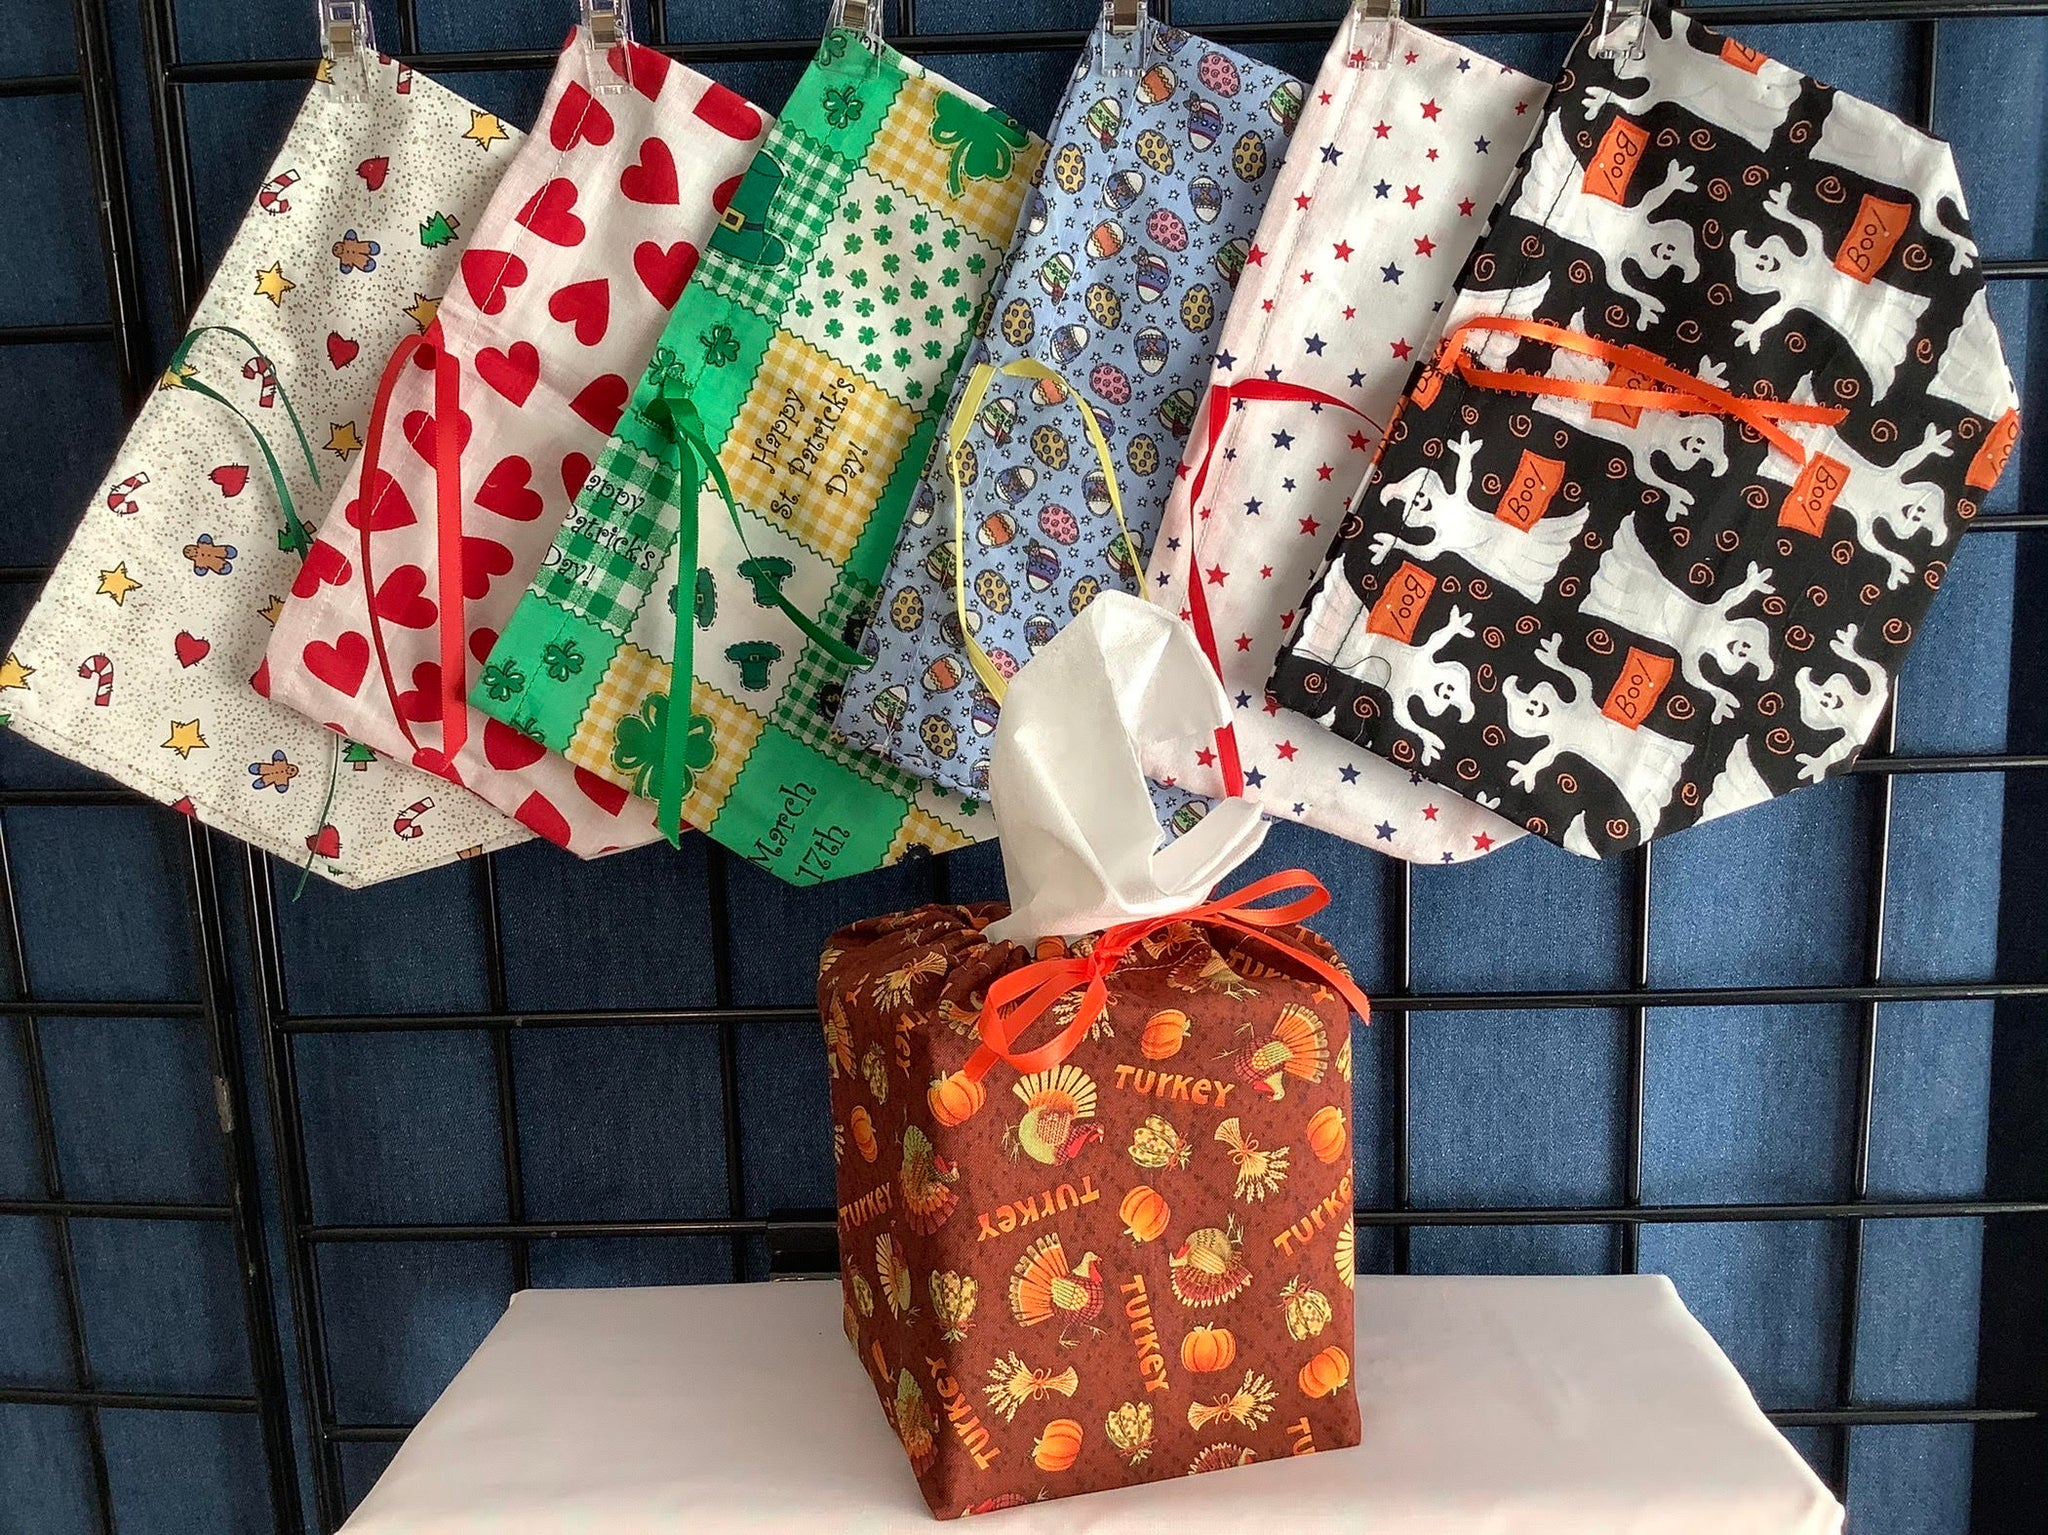 Set of 7 Square Holiday Tissue Box Covers by Three Generation Novelties Kalispell Montana